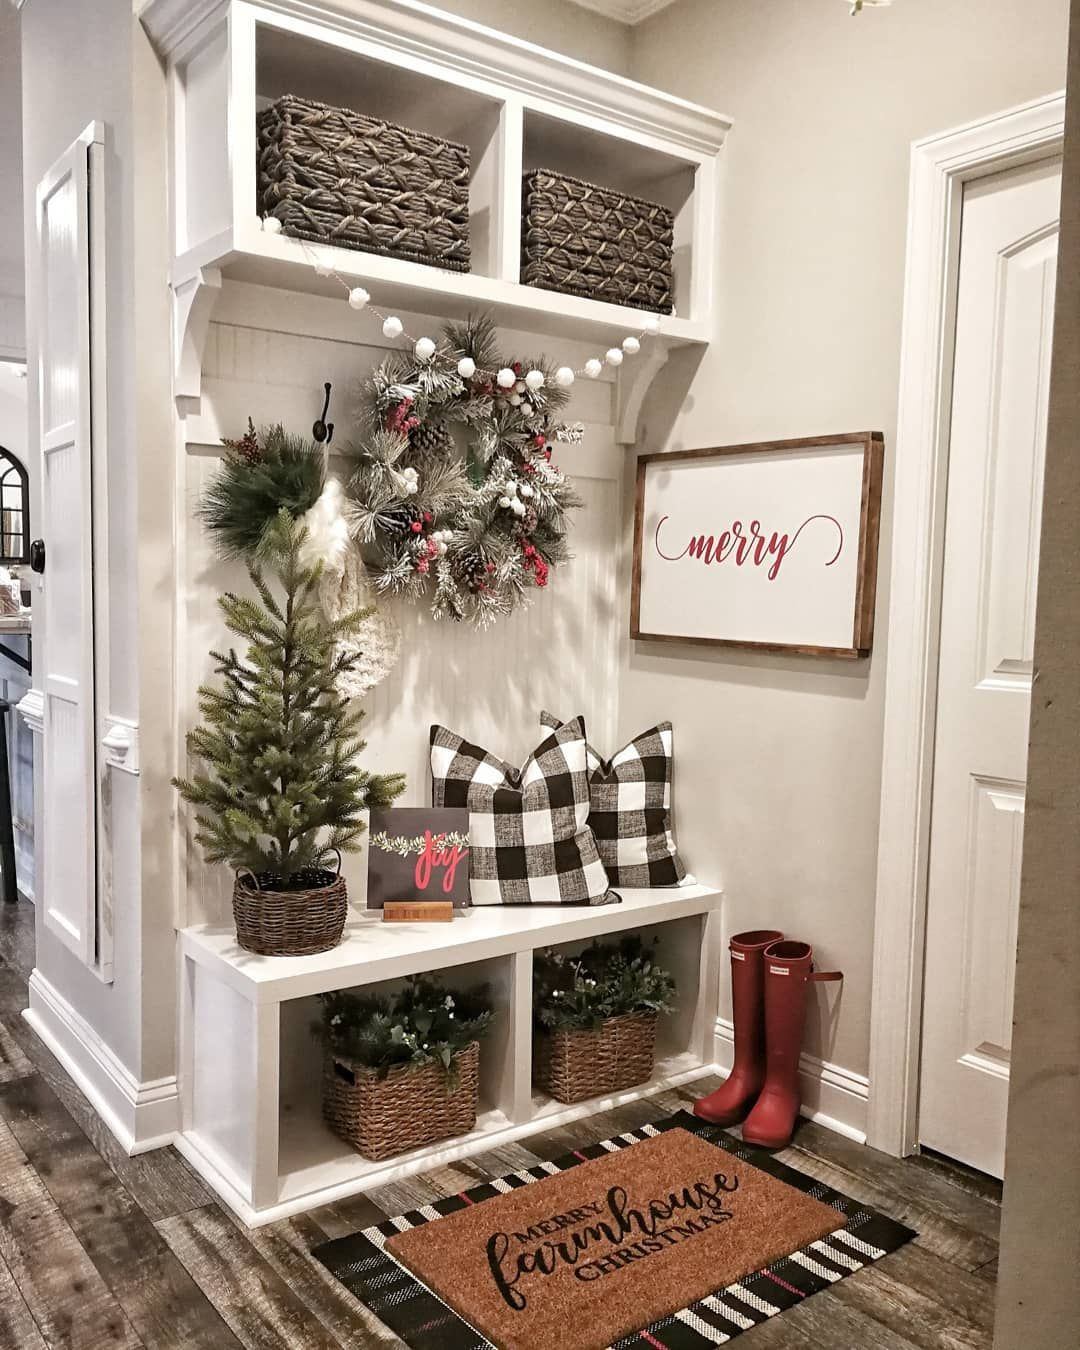 Tamara salvetti on instagram  care you ready for santa  think also comfy farmhouse living room designs to steal rh pinterest